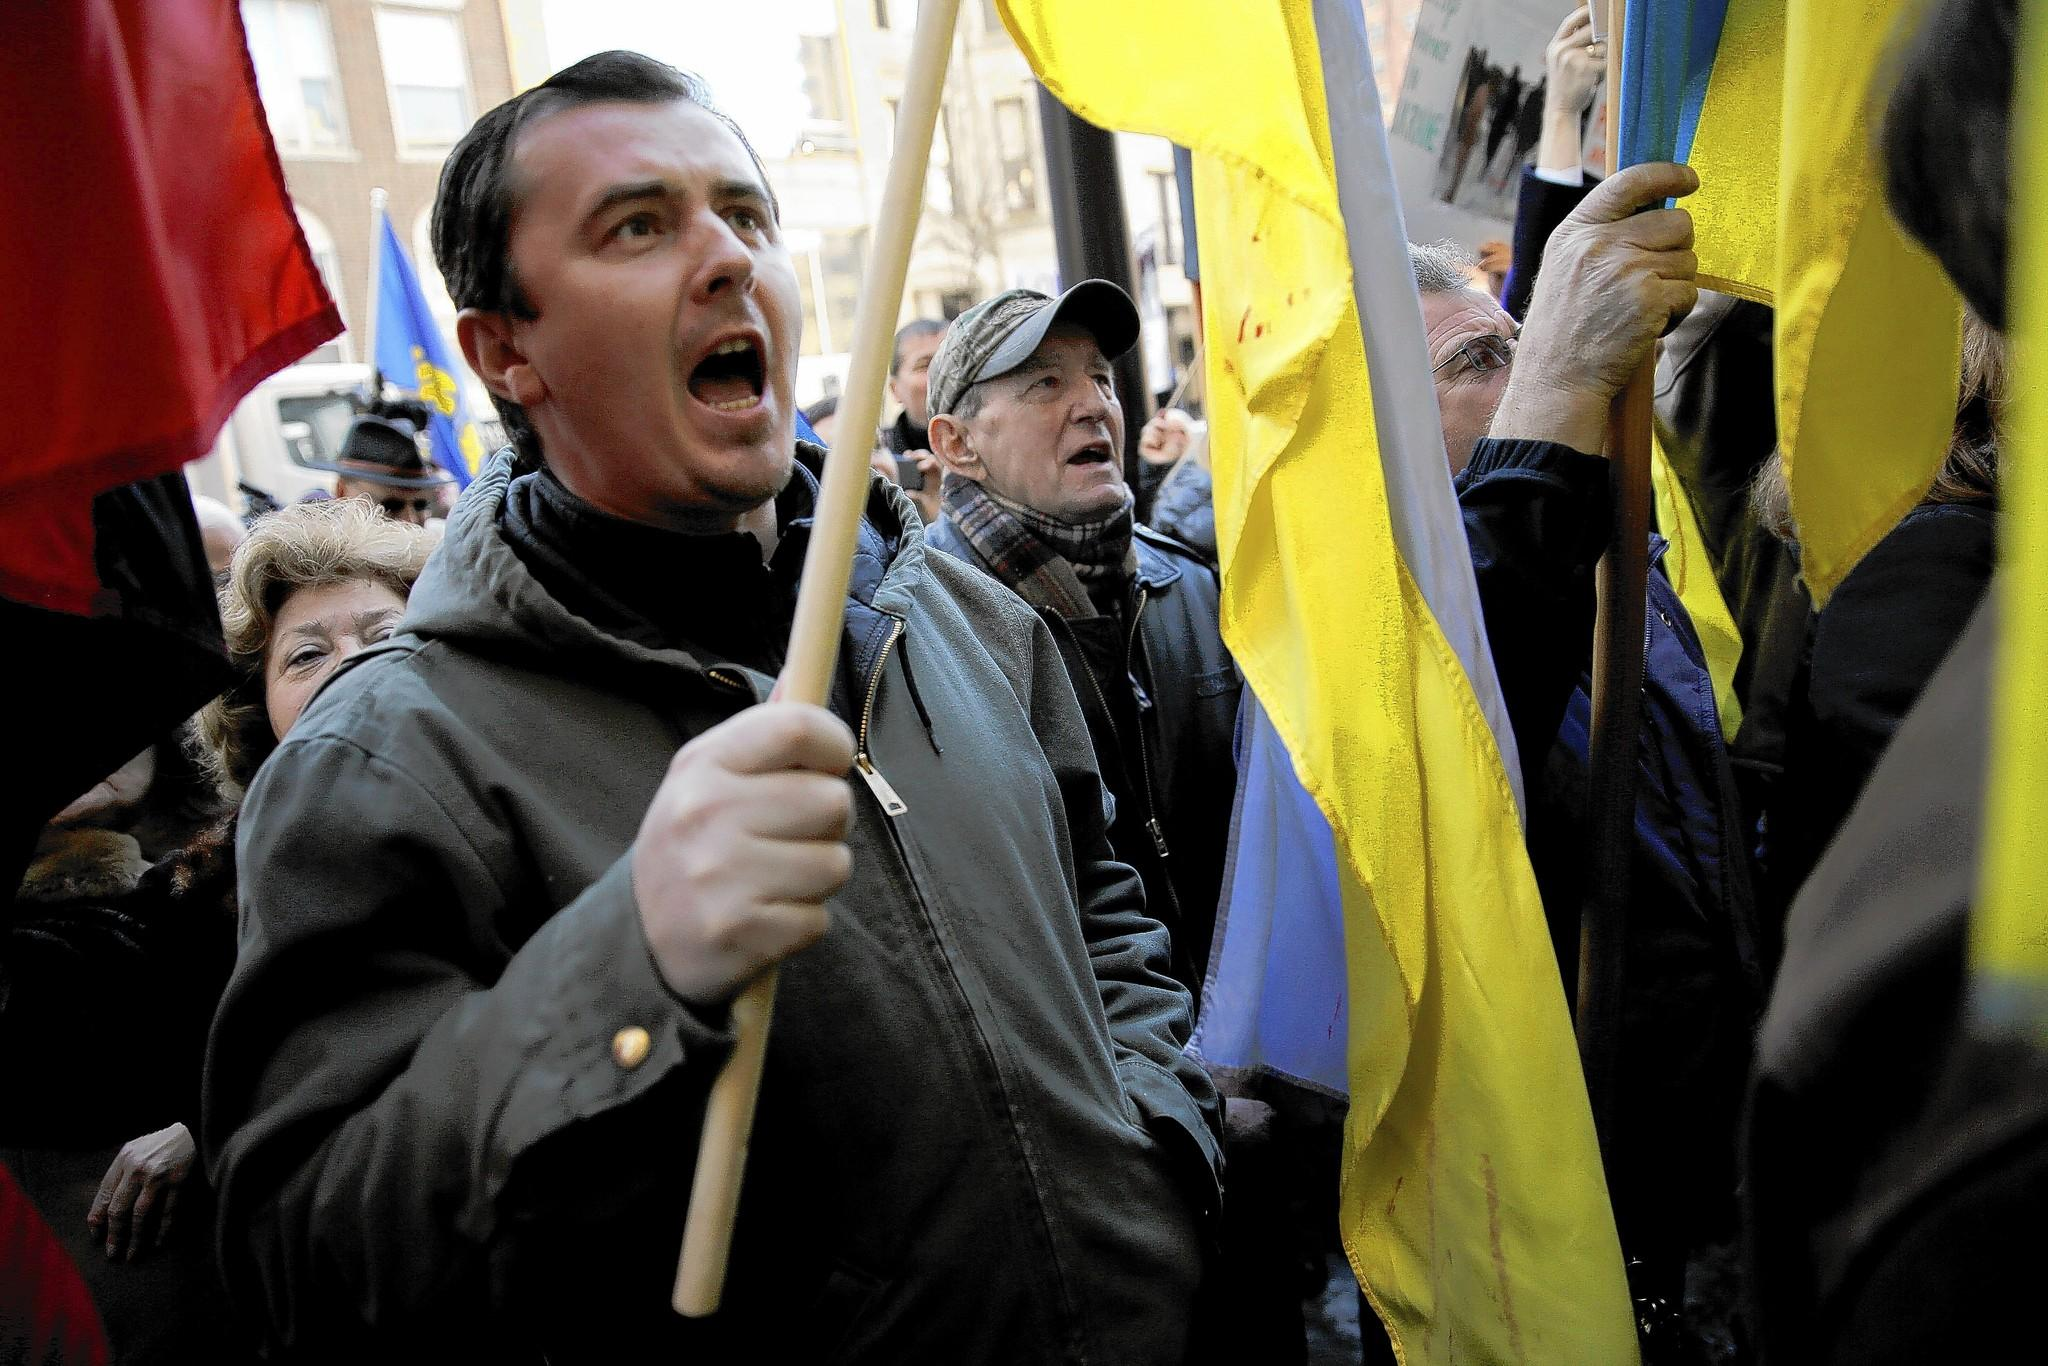 Protesters gather outside the Consulate General of Ukraine Wednesday to denounce the country's recent string of deadly violence during demonstrations and to demand that Western leaders intervene.